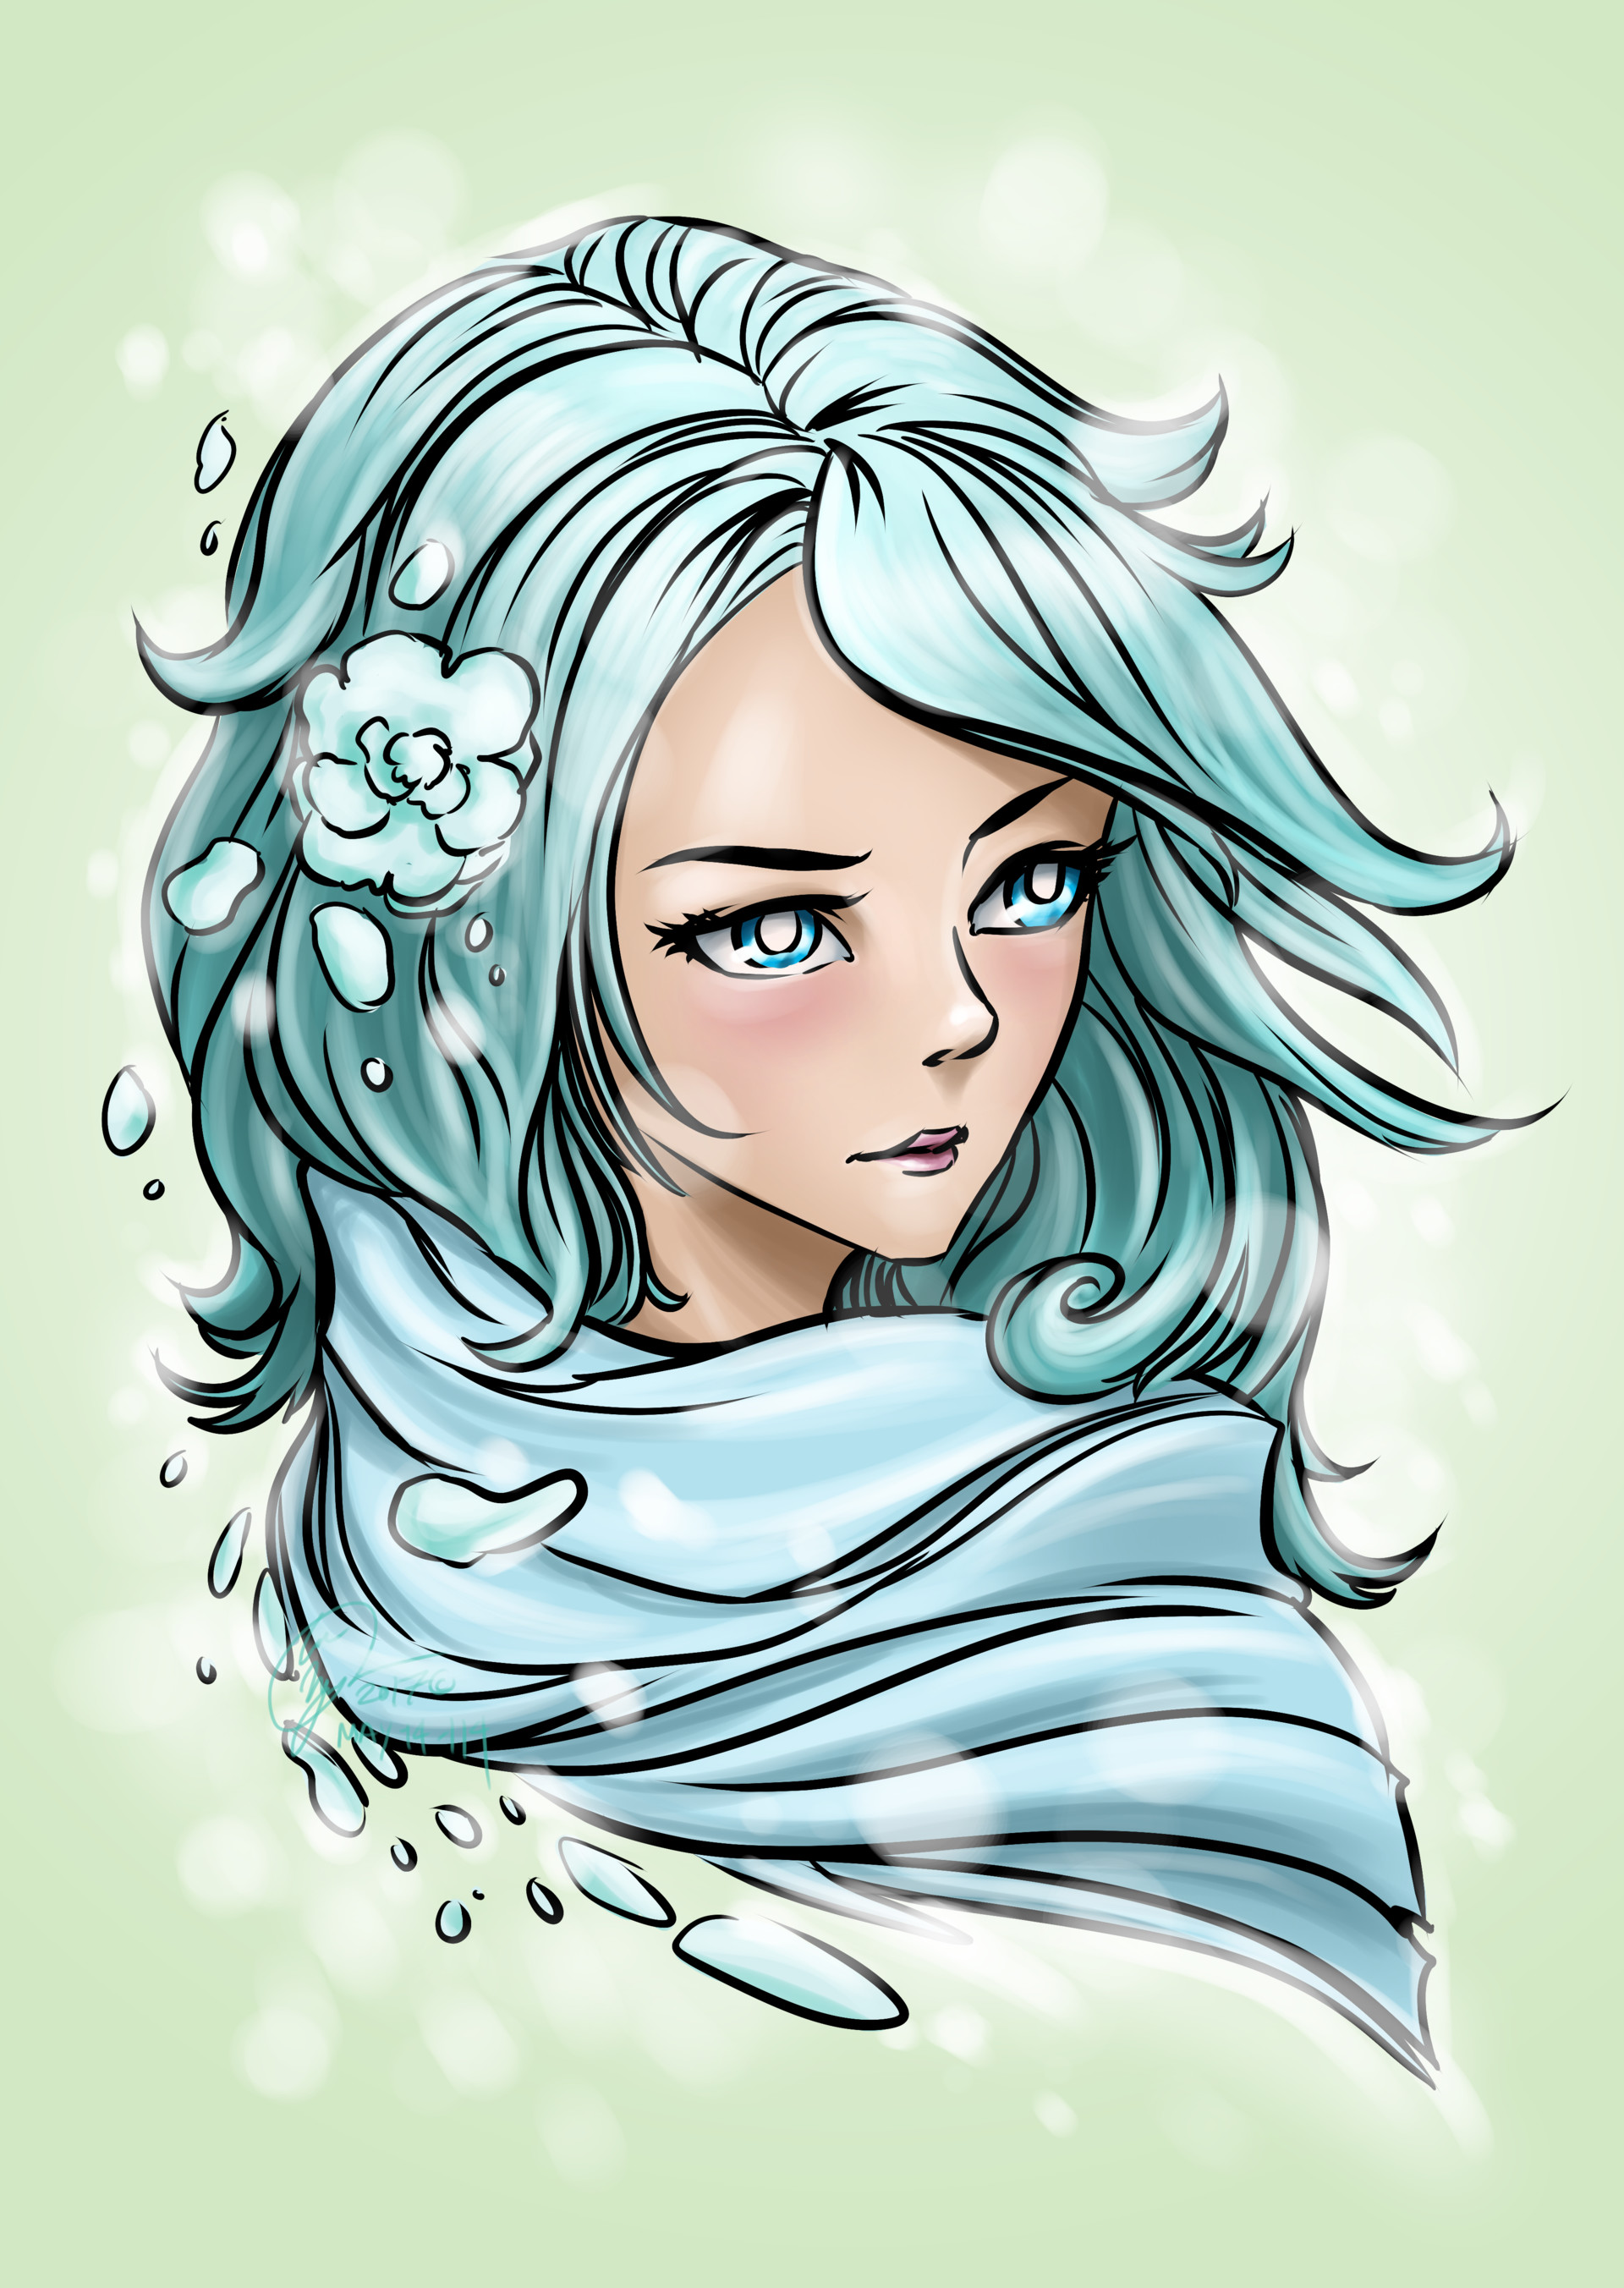 Anime character style